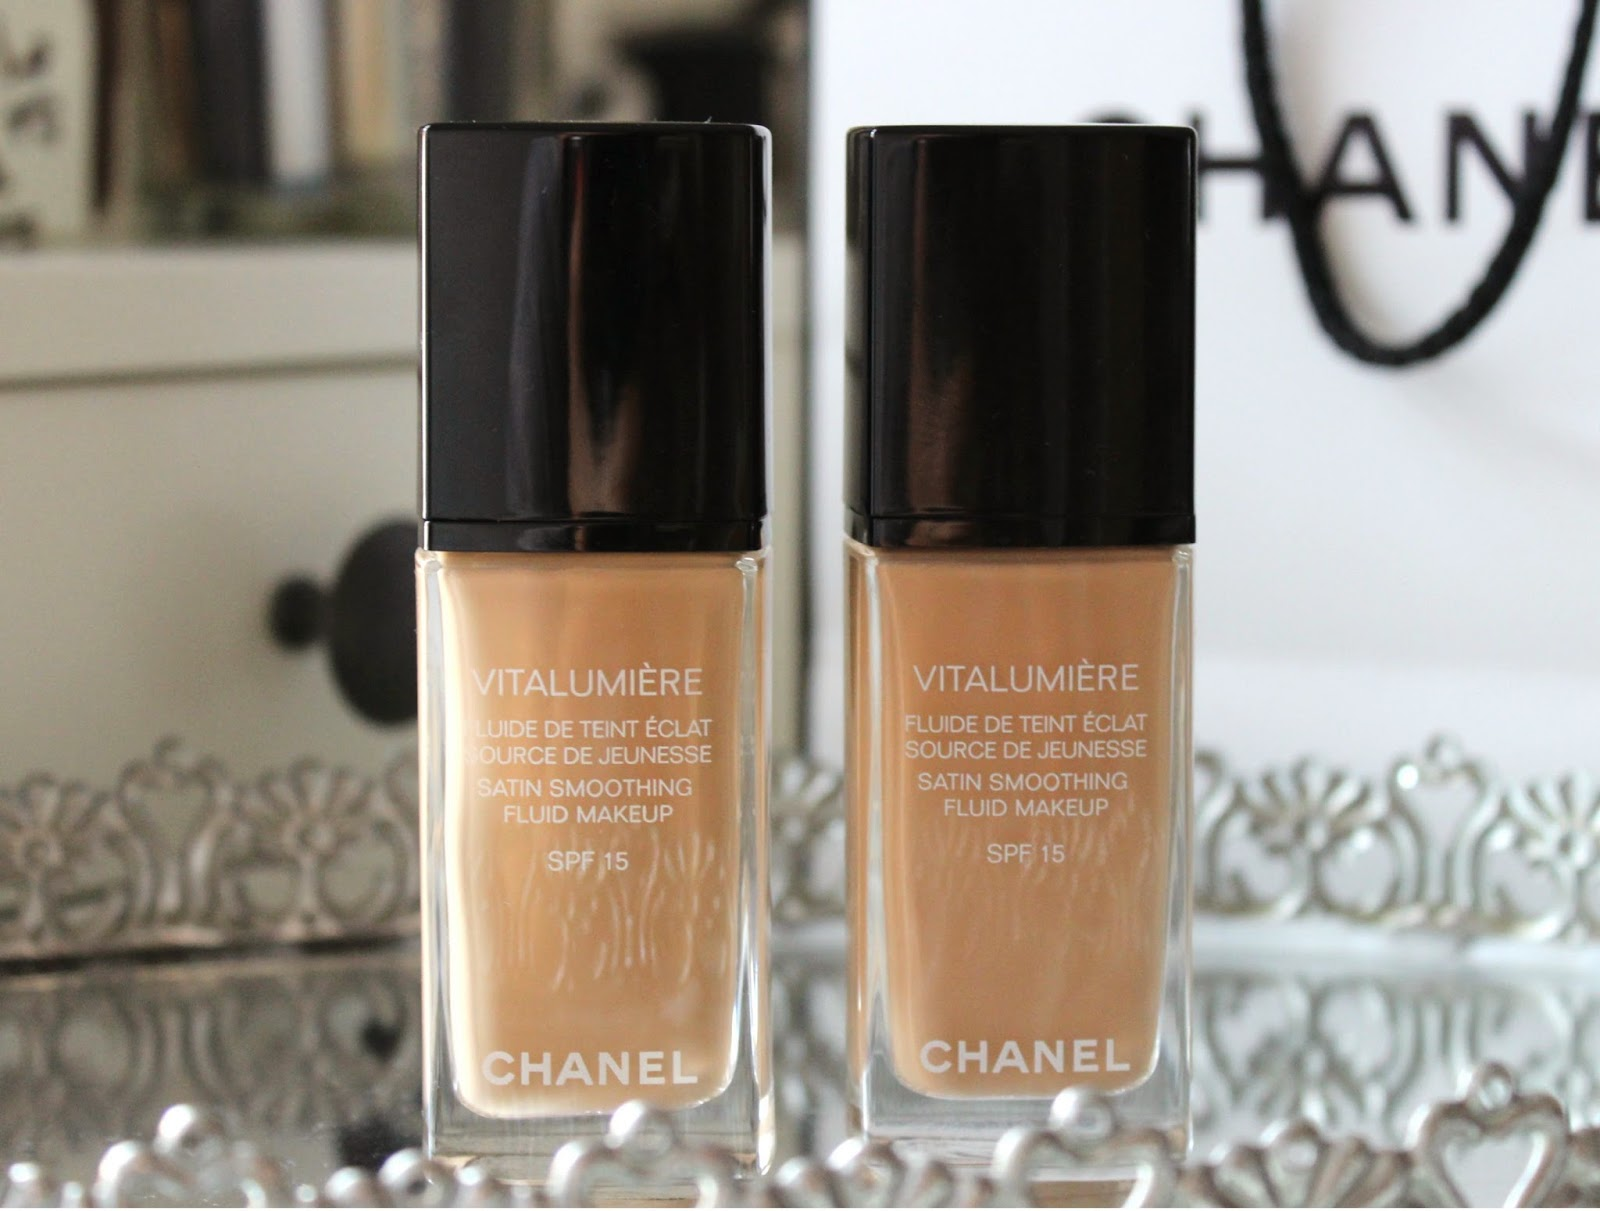 Vitalumiere Chanel collection pictures best photo